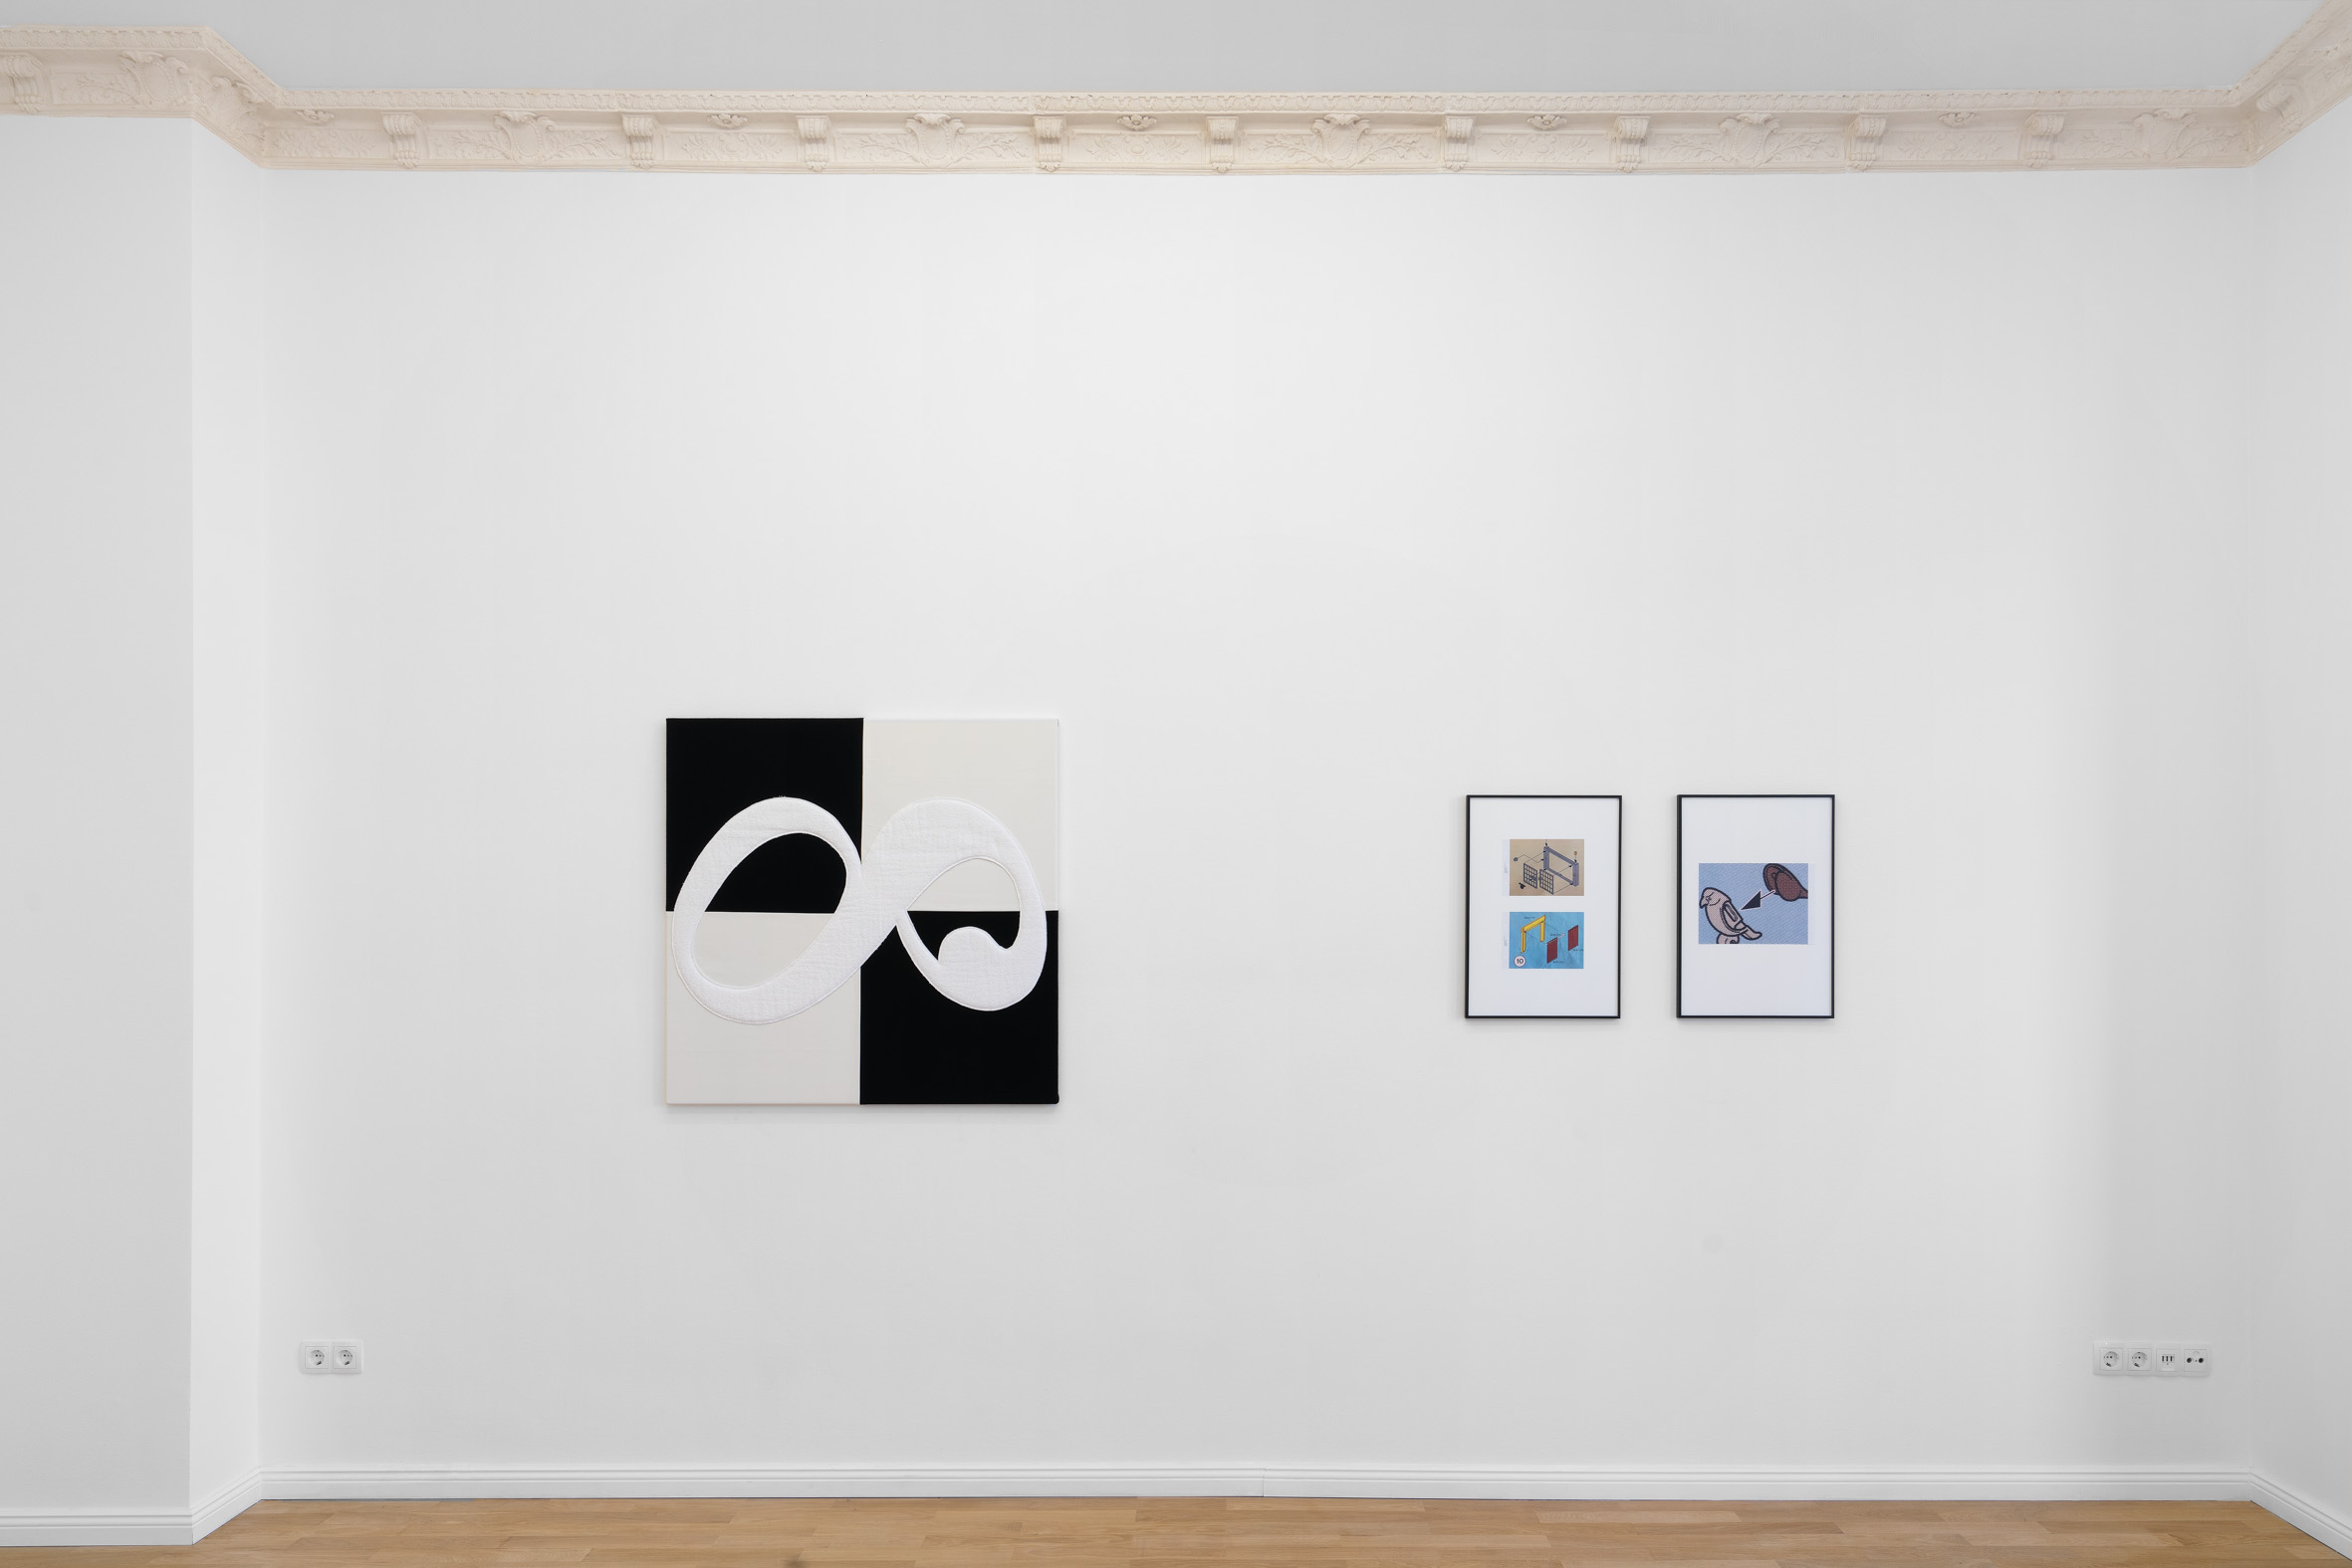 Installation view,  Cecilia  Left to right: Benjamin Hirte,  Not yet titled , 2019; Anna-Sophie Berger,  Playproblems 2 , 2018; Anna-Sophie Berger,  Playproblems 4 , 2018